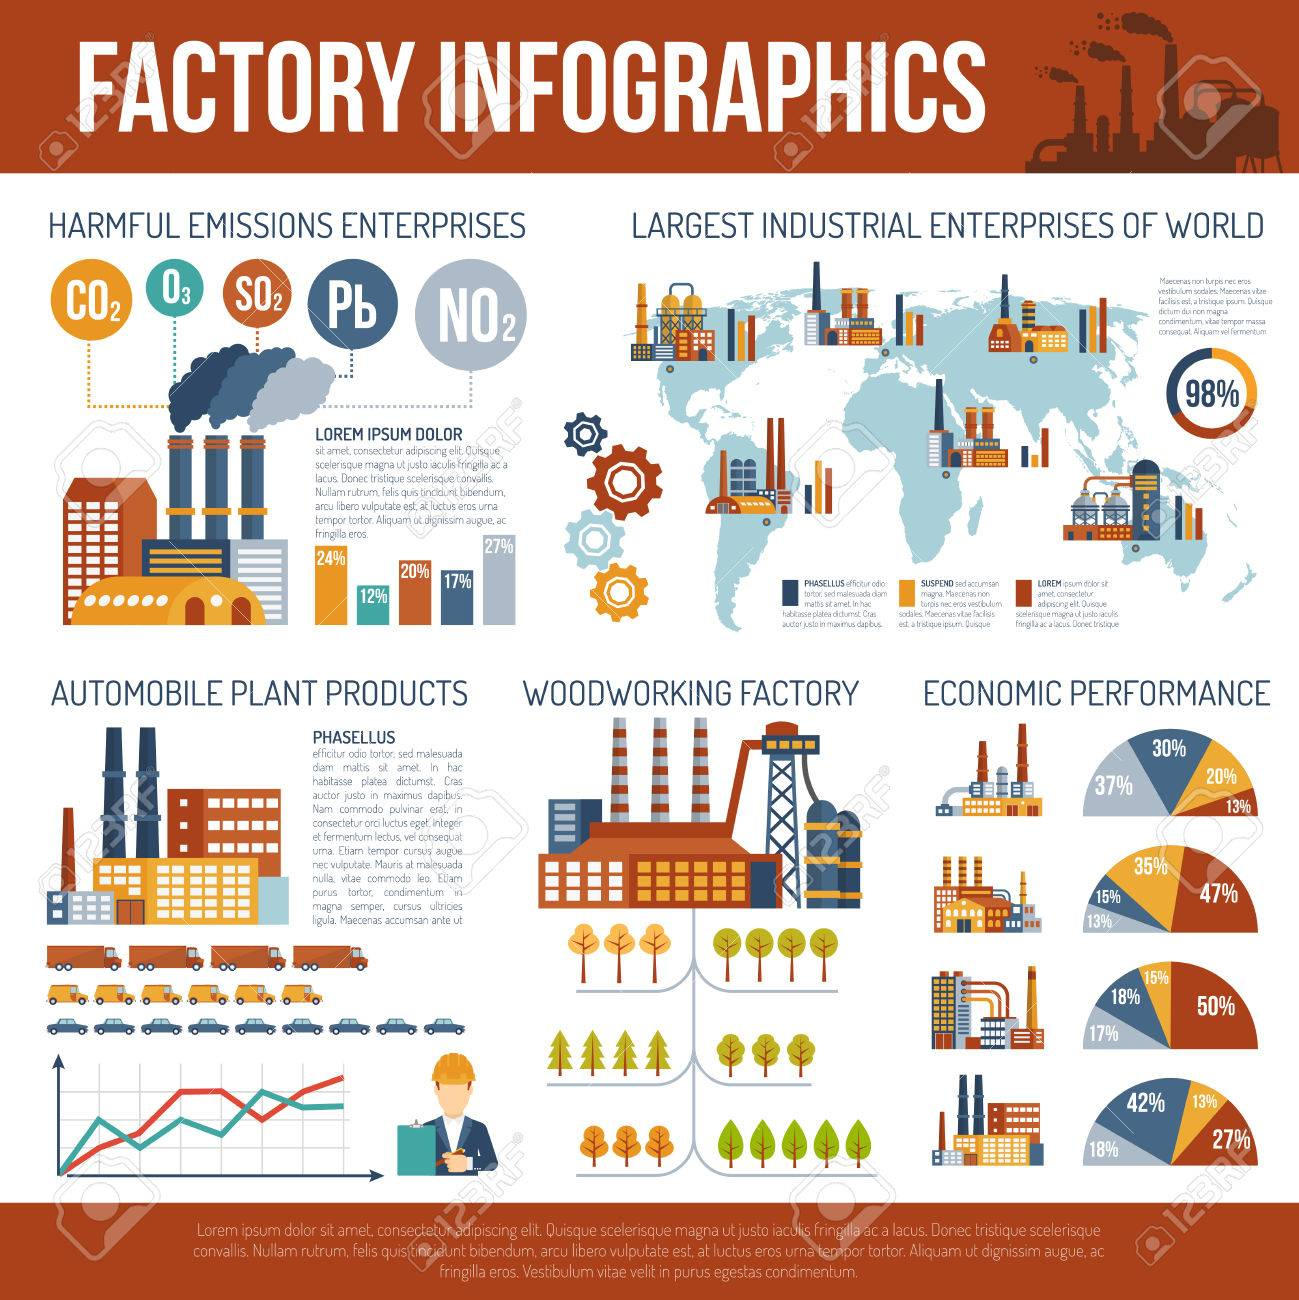 Industrial infographics with factories and plants symbols charts.. on topographical map of the world, regions map of the world, energy map of the world, income map of the world, water map of the world, small scale map of the world, general map of the world, geophysical map of the world, school map of the world, country map of the world, economic map of the world, flat map of the world, culinary map of the world, aerial map of the world, the political map of the world, geographical map of the world, traditional map of the world, travel map of the world, natural resource map of the world, military map of the world,